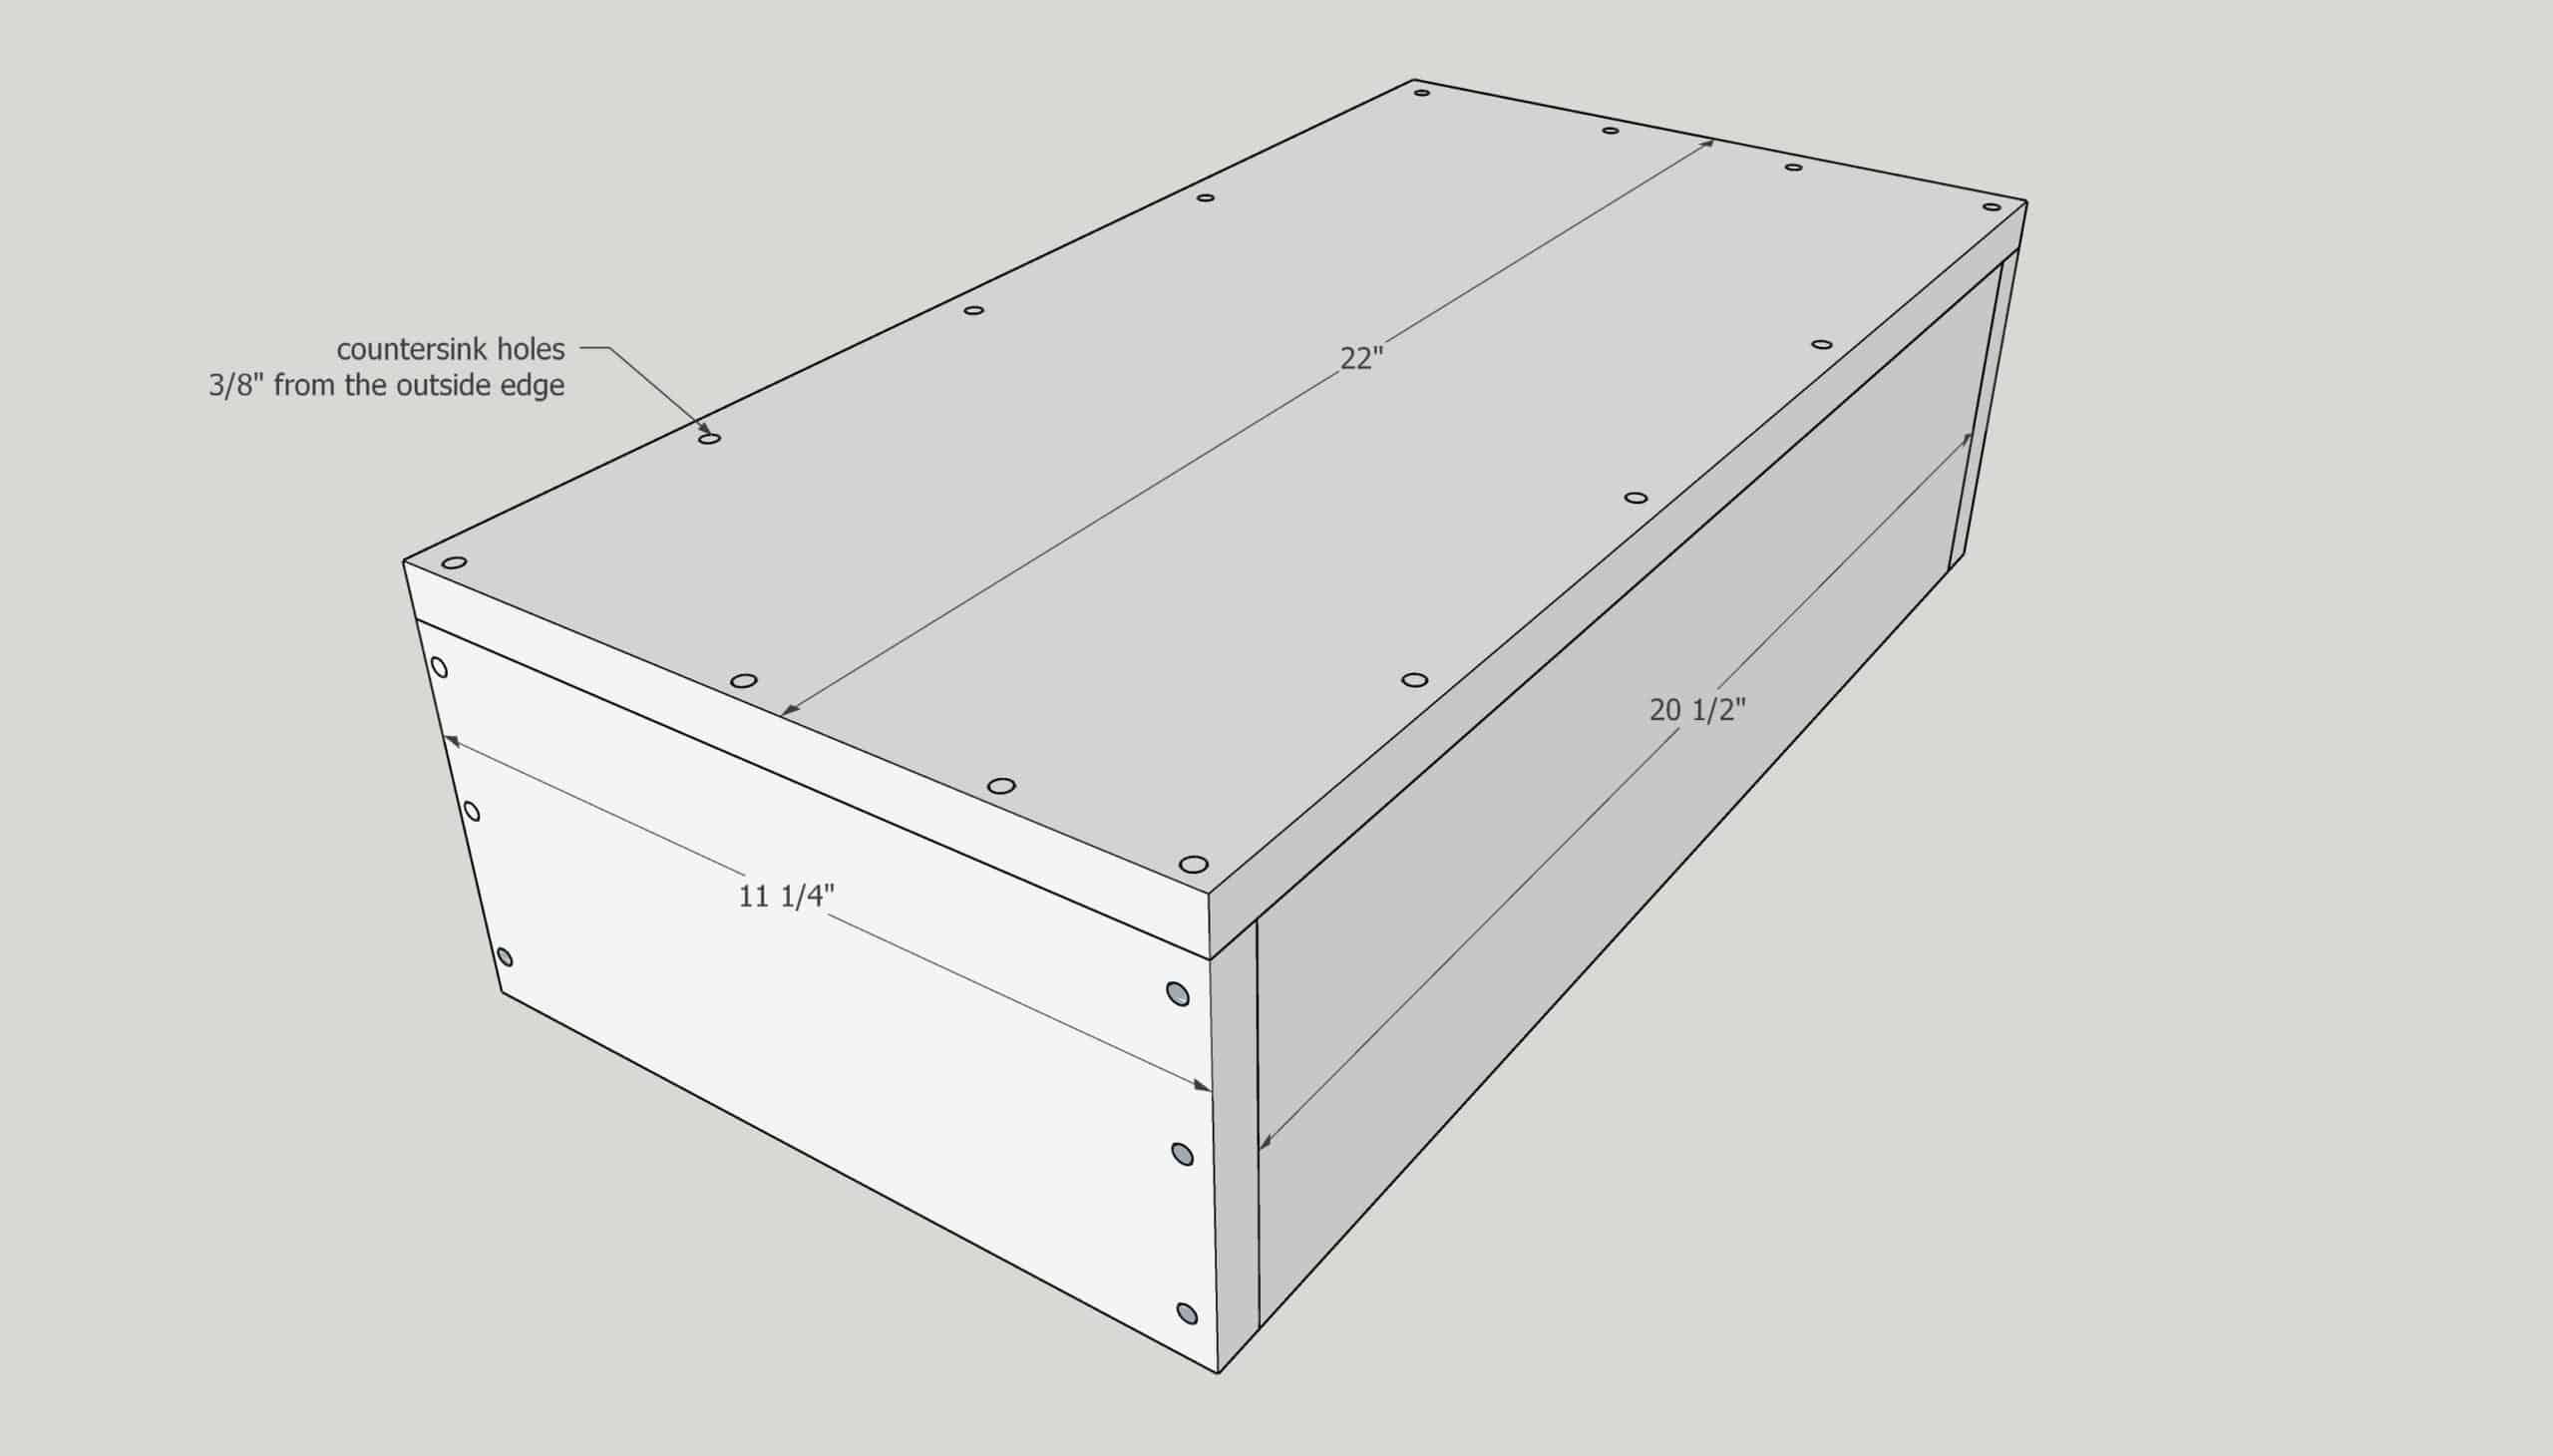 countersink holes along edges of trash can cabinet drawer box